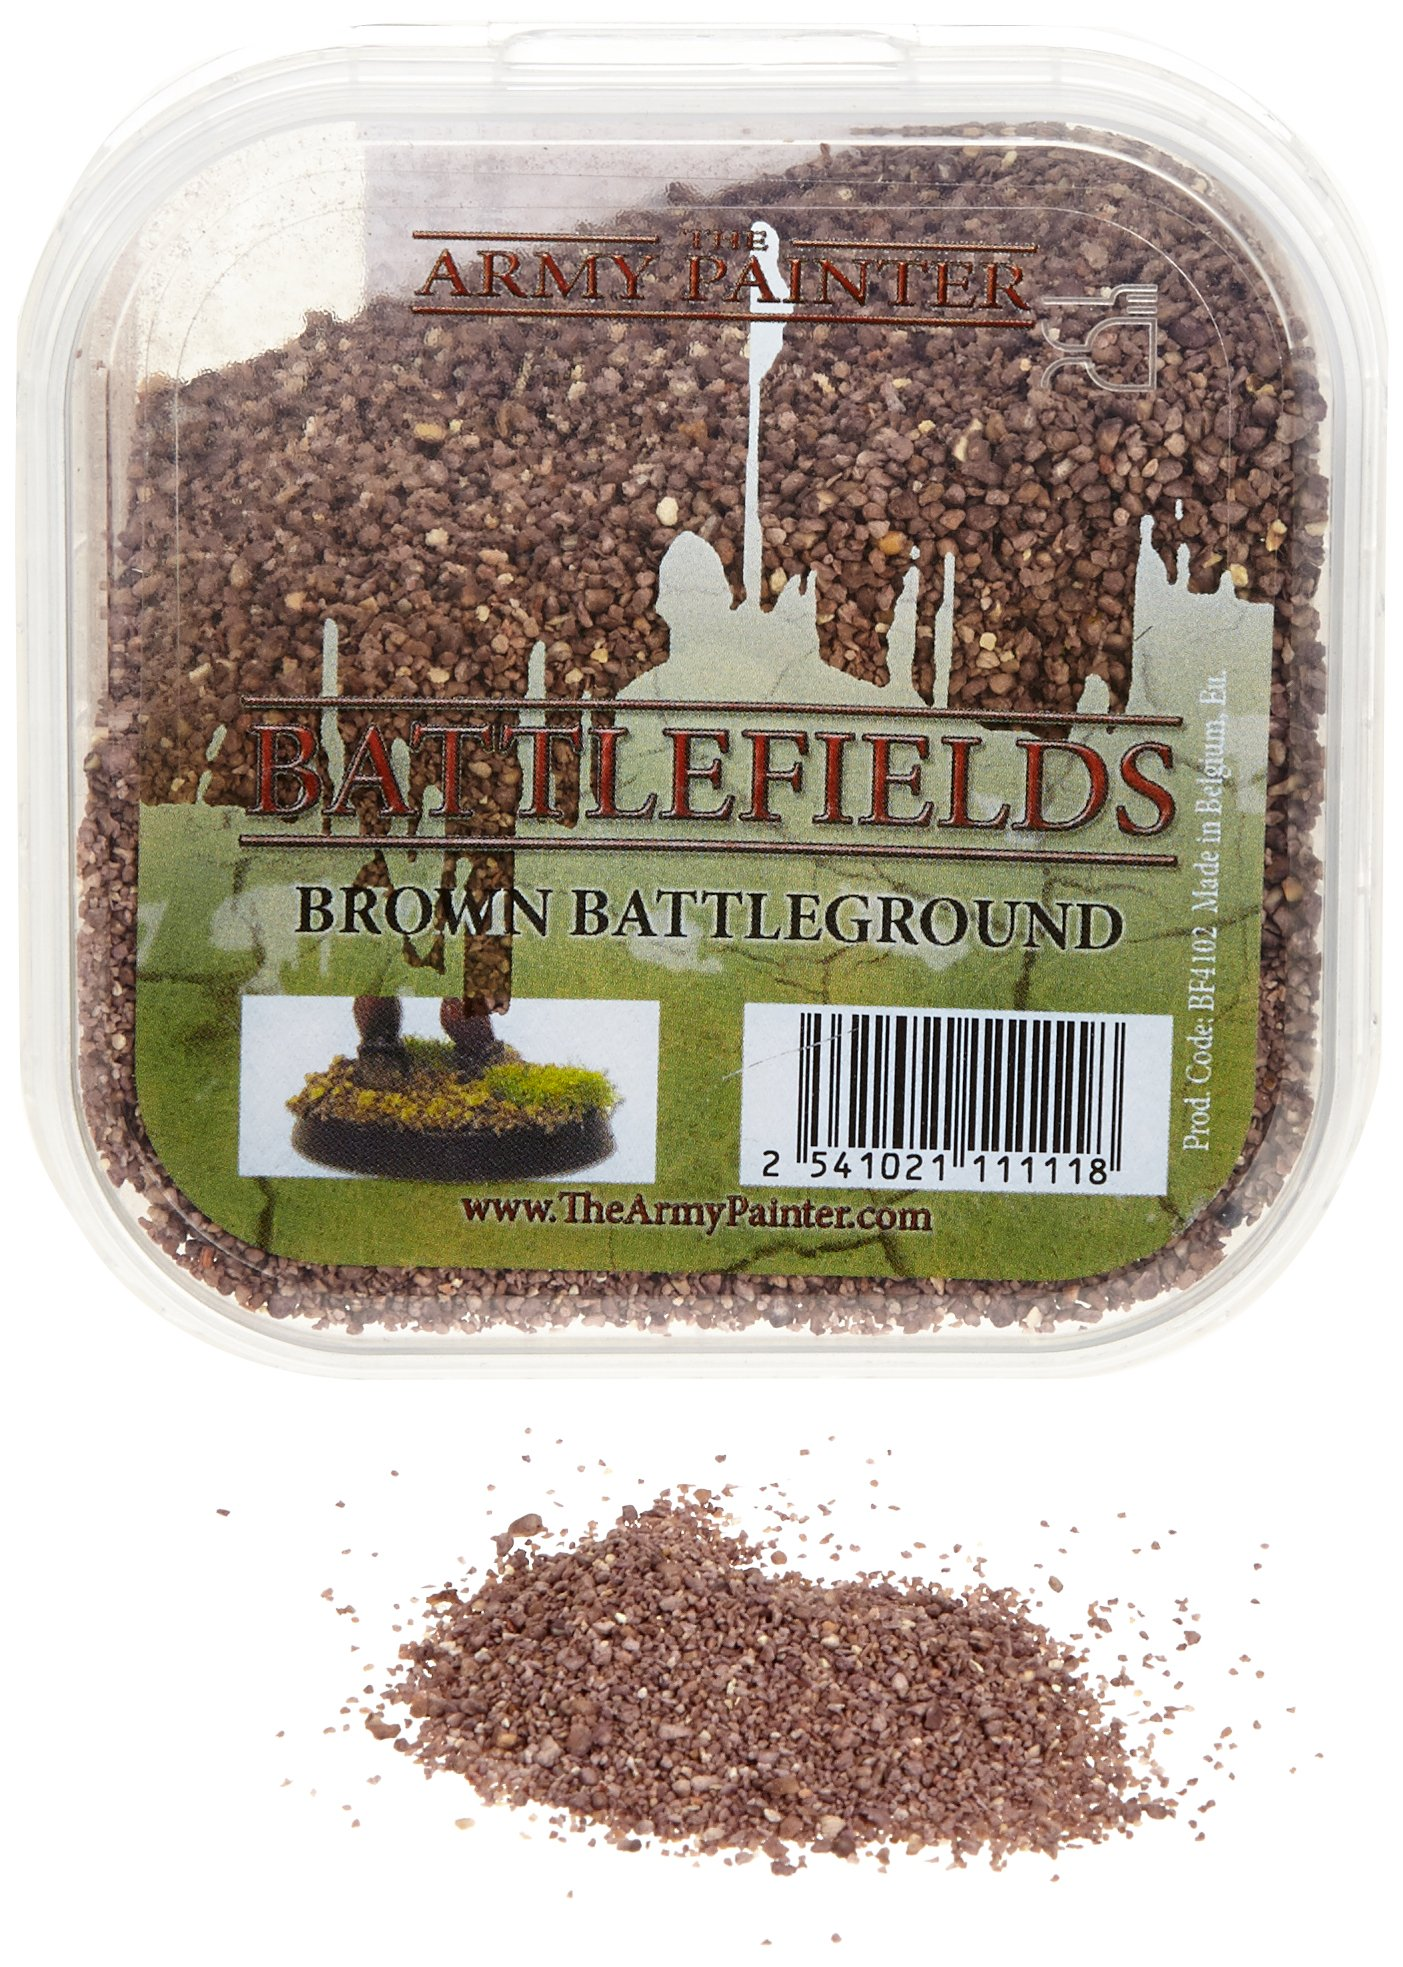 The Army Painter Battlefields Brown Battleground Basing - 150ml